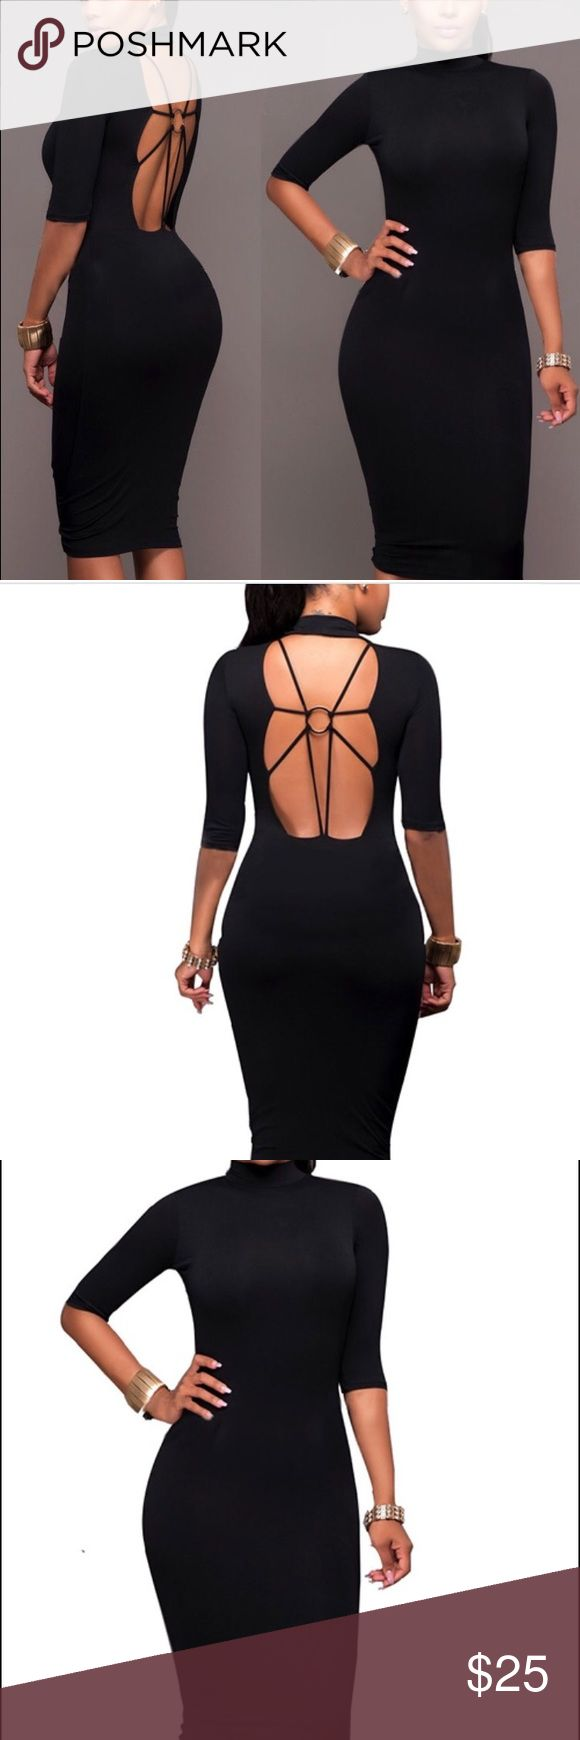 Form fitting knee length black dress. This dress is simply fabulous. Form fitting with a beautiful open back. Dresses